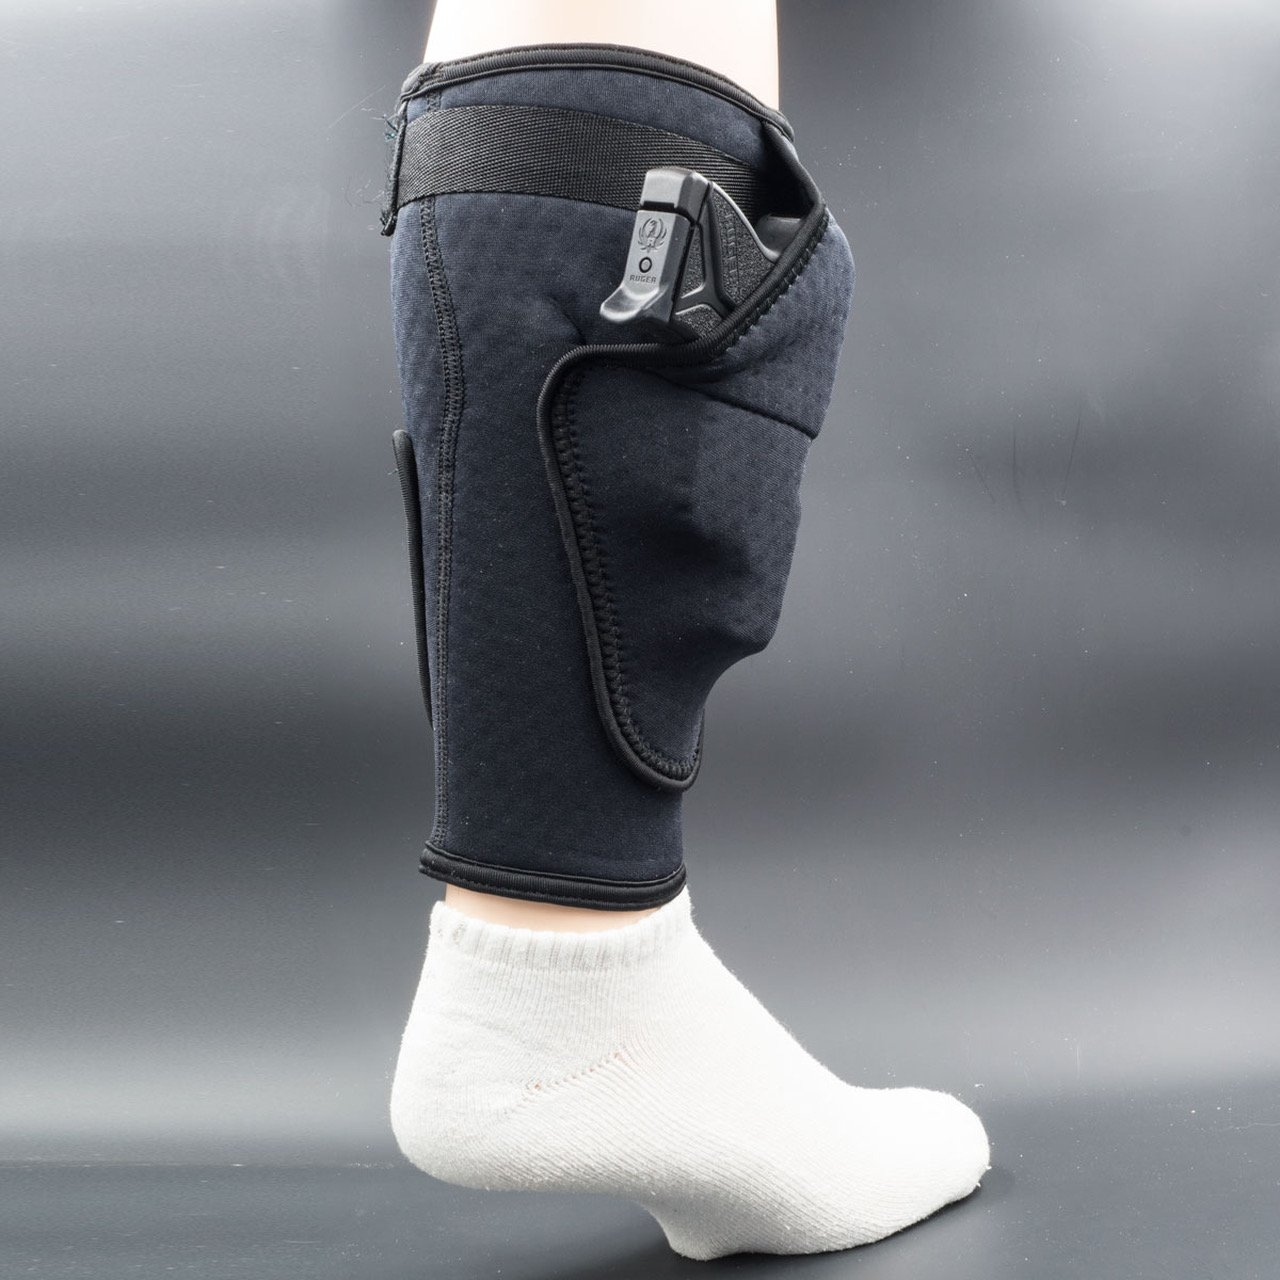 5. BUGBite Concealment Calf Holster